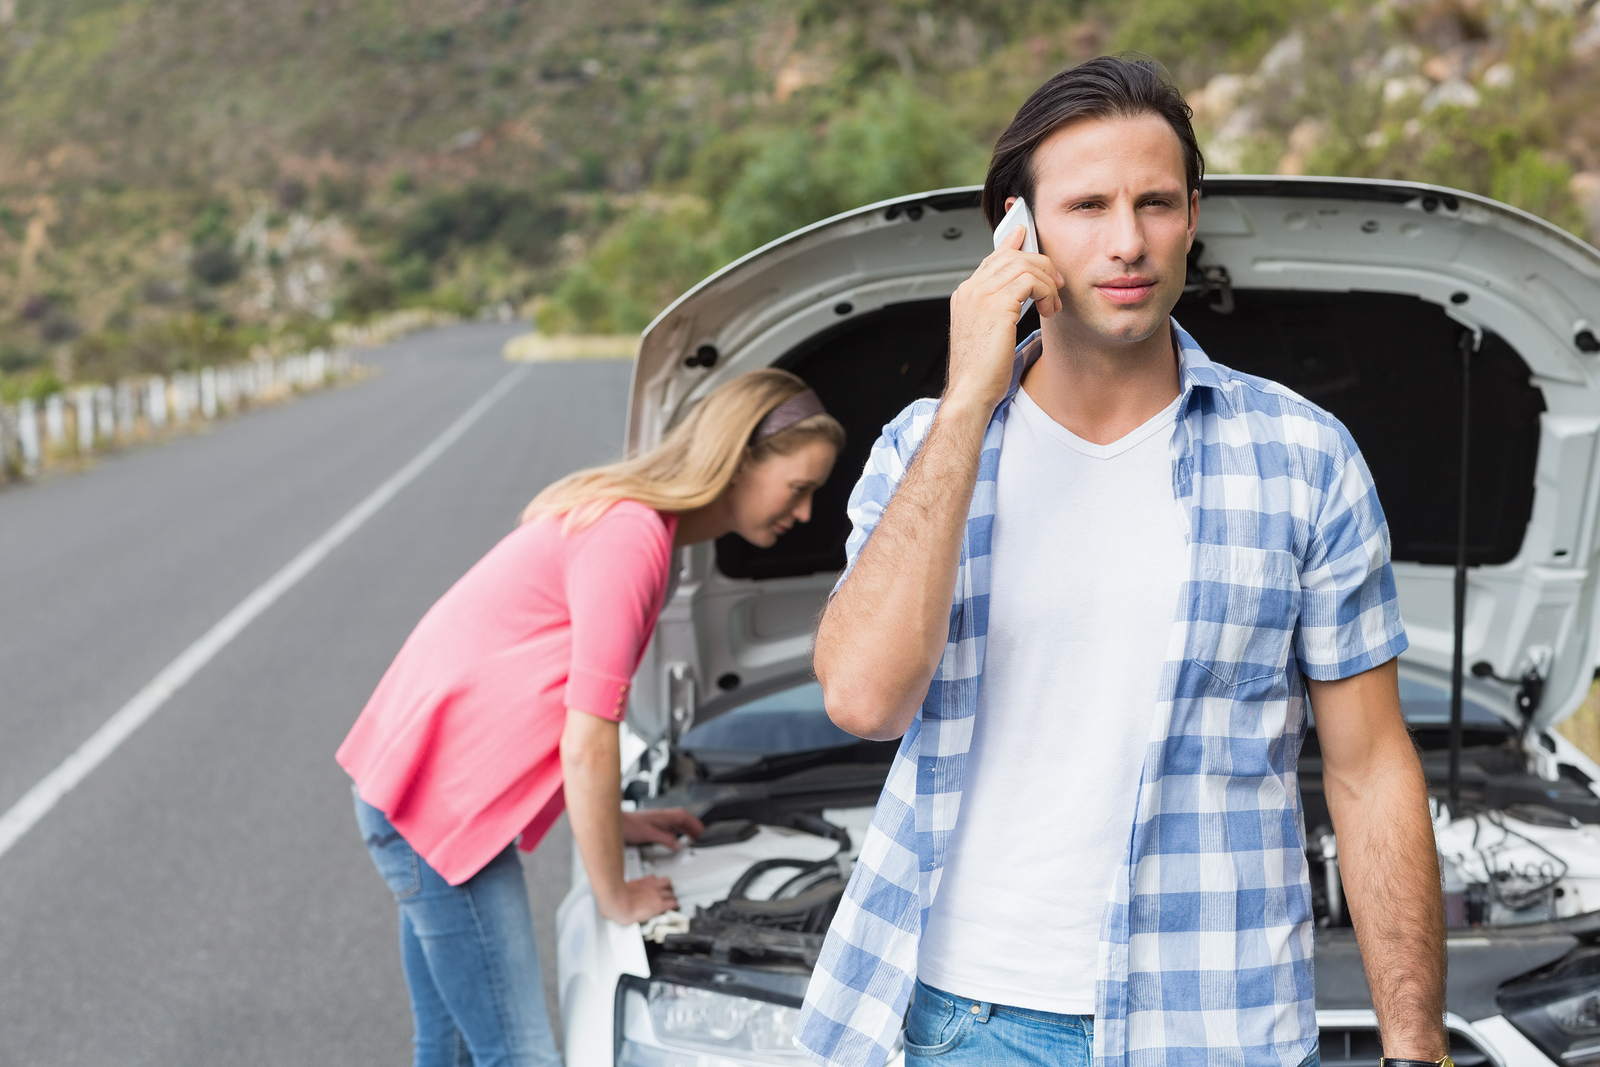 Car insurance liability limits tell you what's covered in the event of a car accident